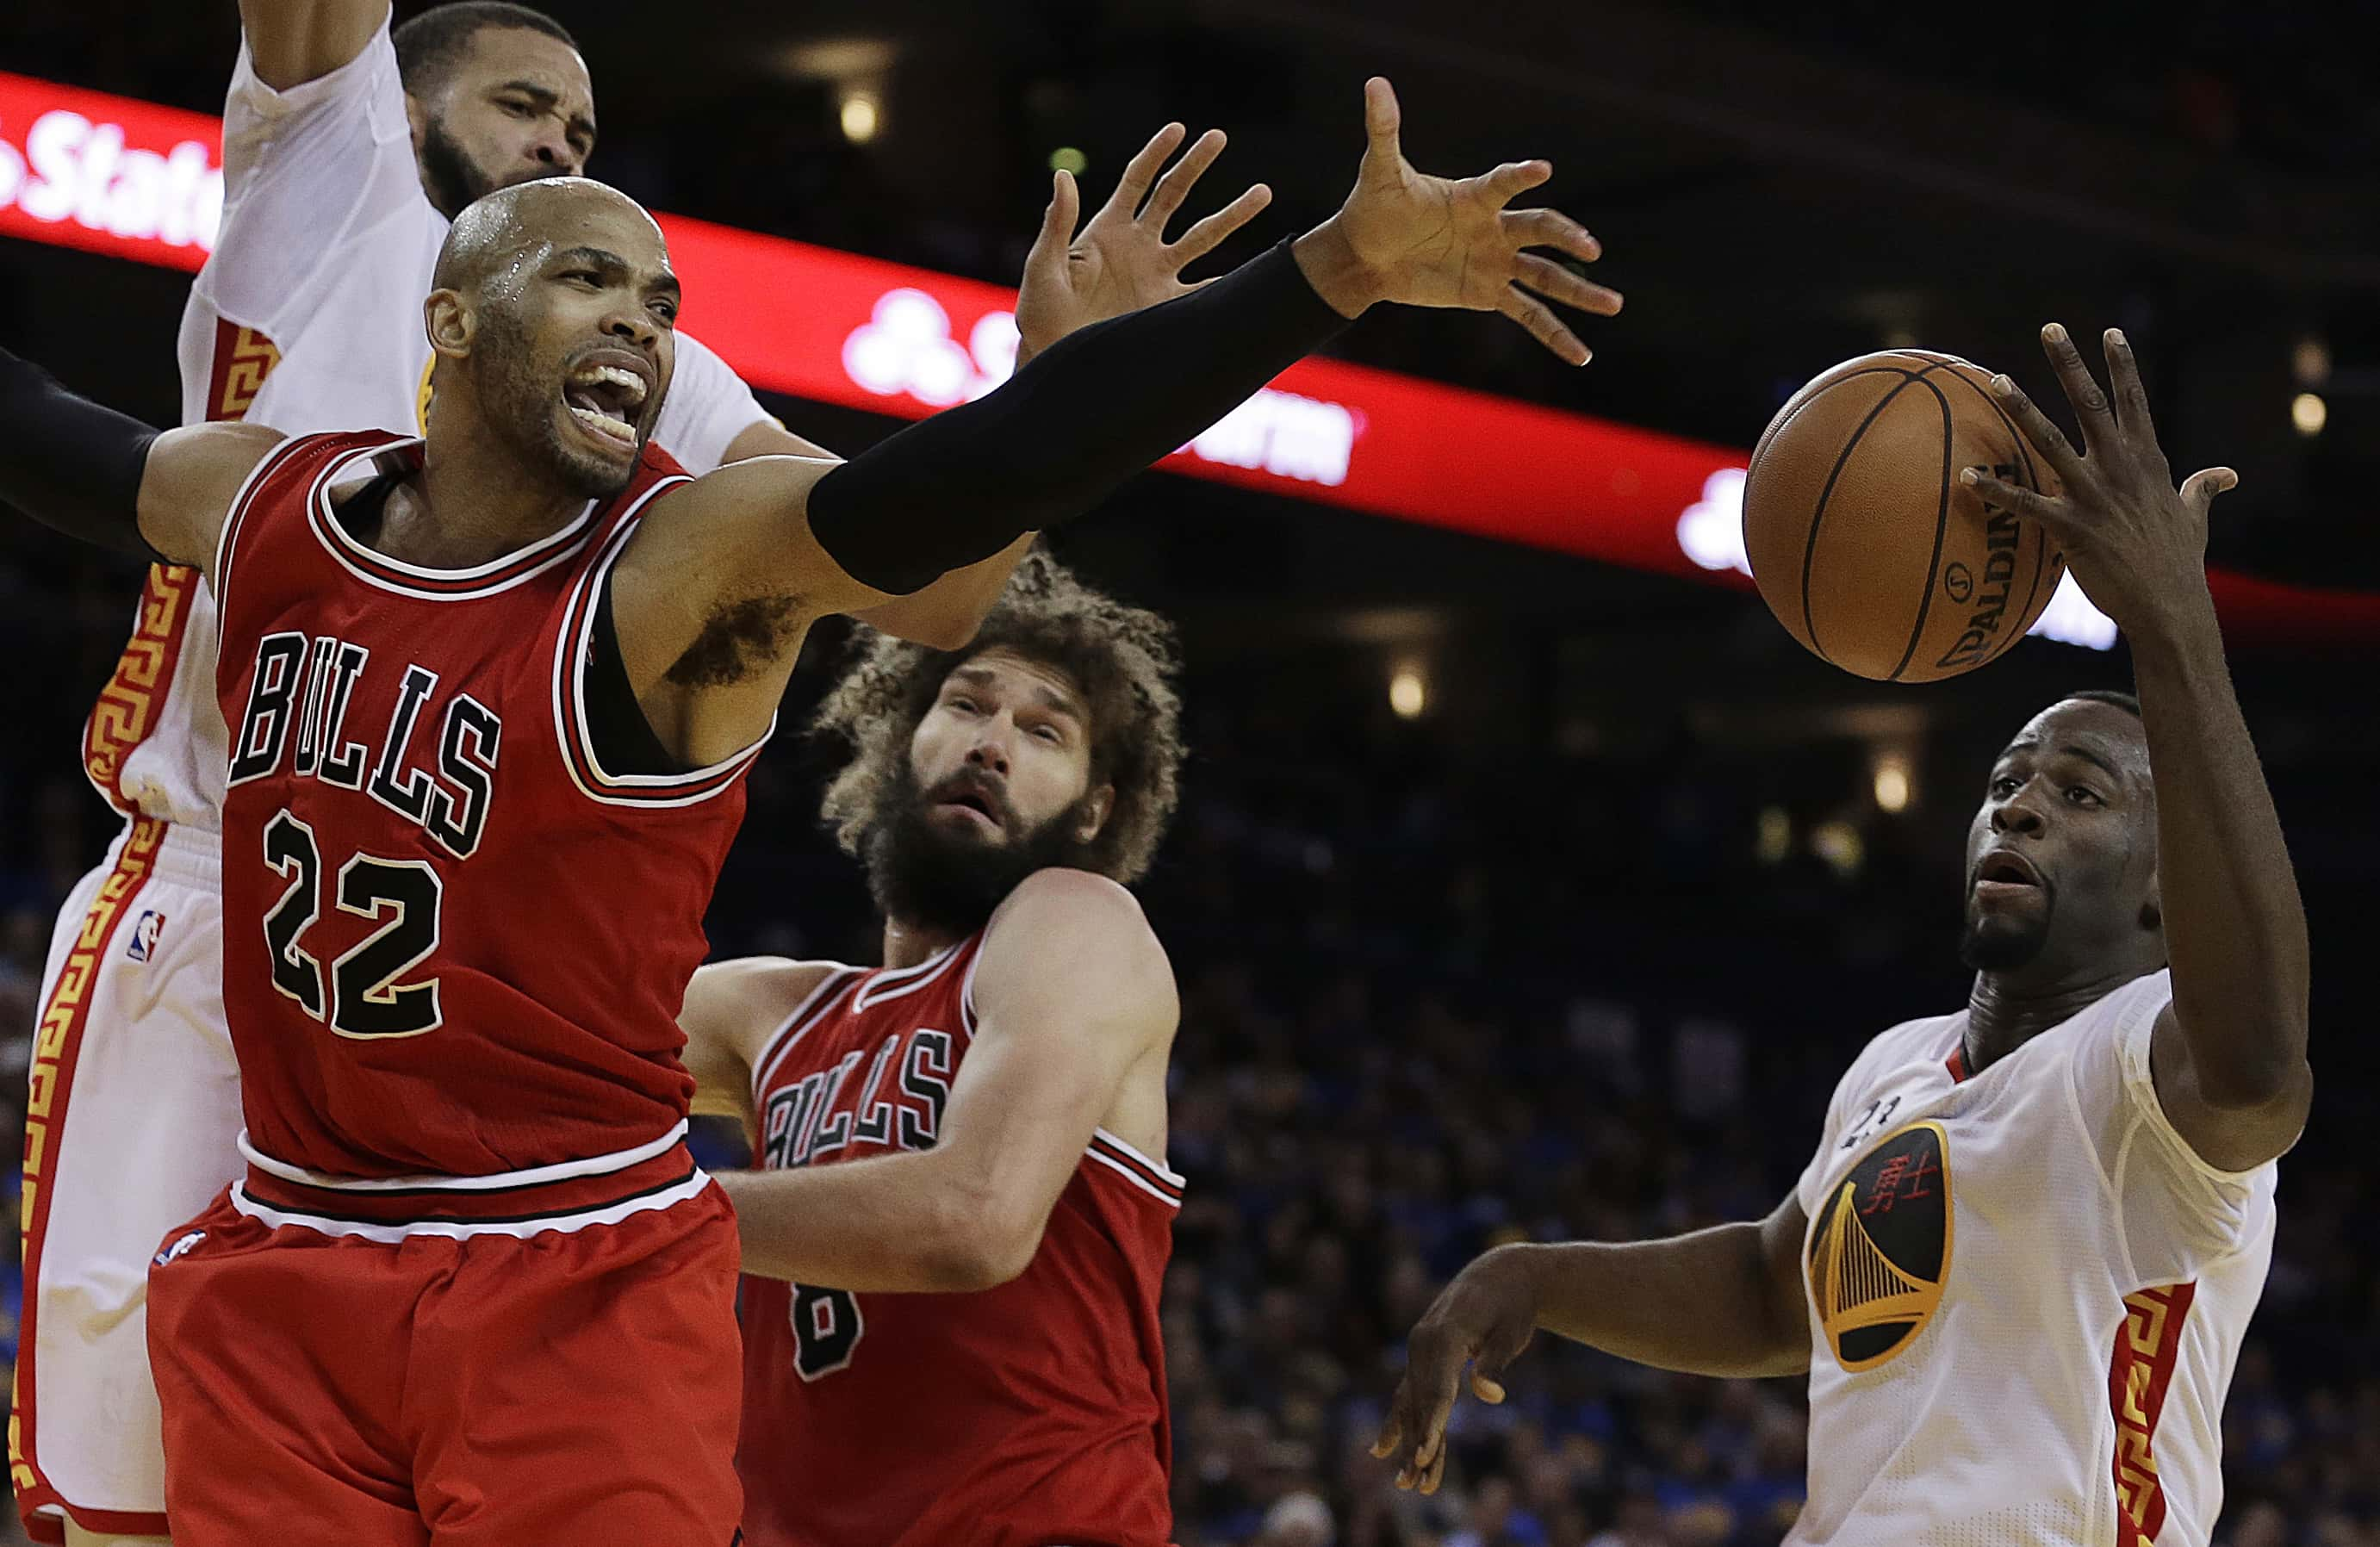 Chicago Bulls forward Taj Gibson (22) loses the ball to Golden State Warriors forward Draymond Green, right, during the second half of an NBA basketball game Wednesday, Feb. 8, 2017, in Oakland, Calif. (AP Photo/Ben Margot)